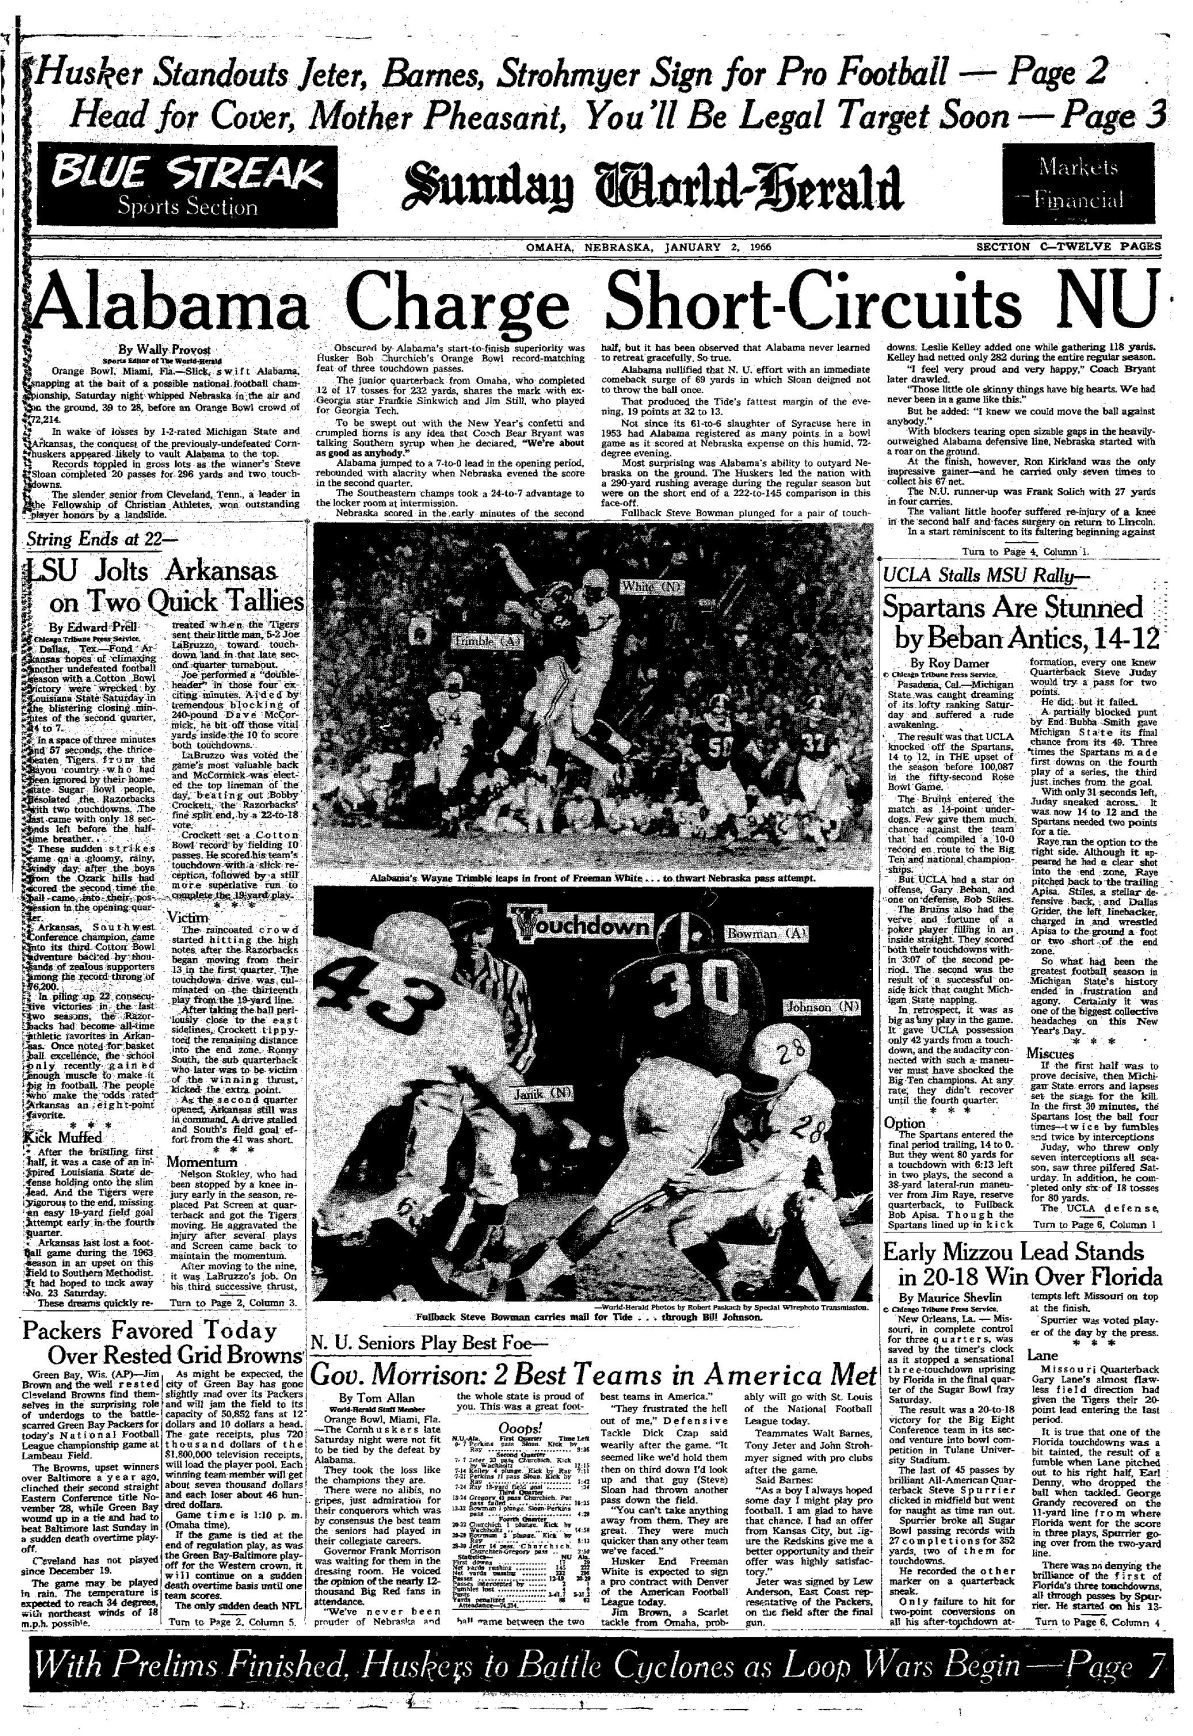 Husker History: World-Herald front pages and images from all 53